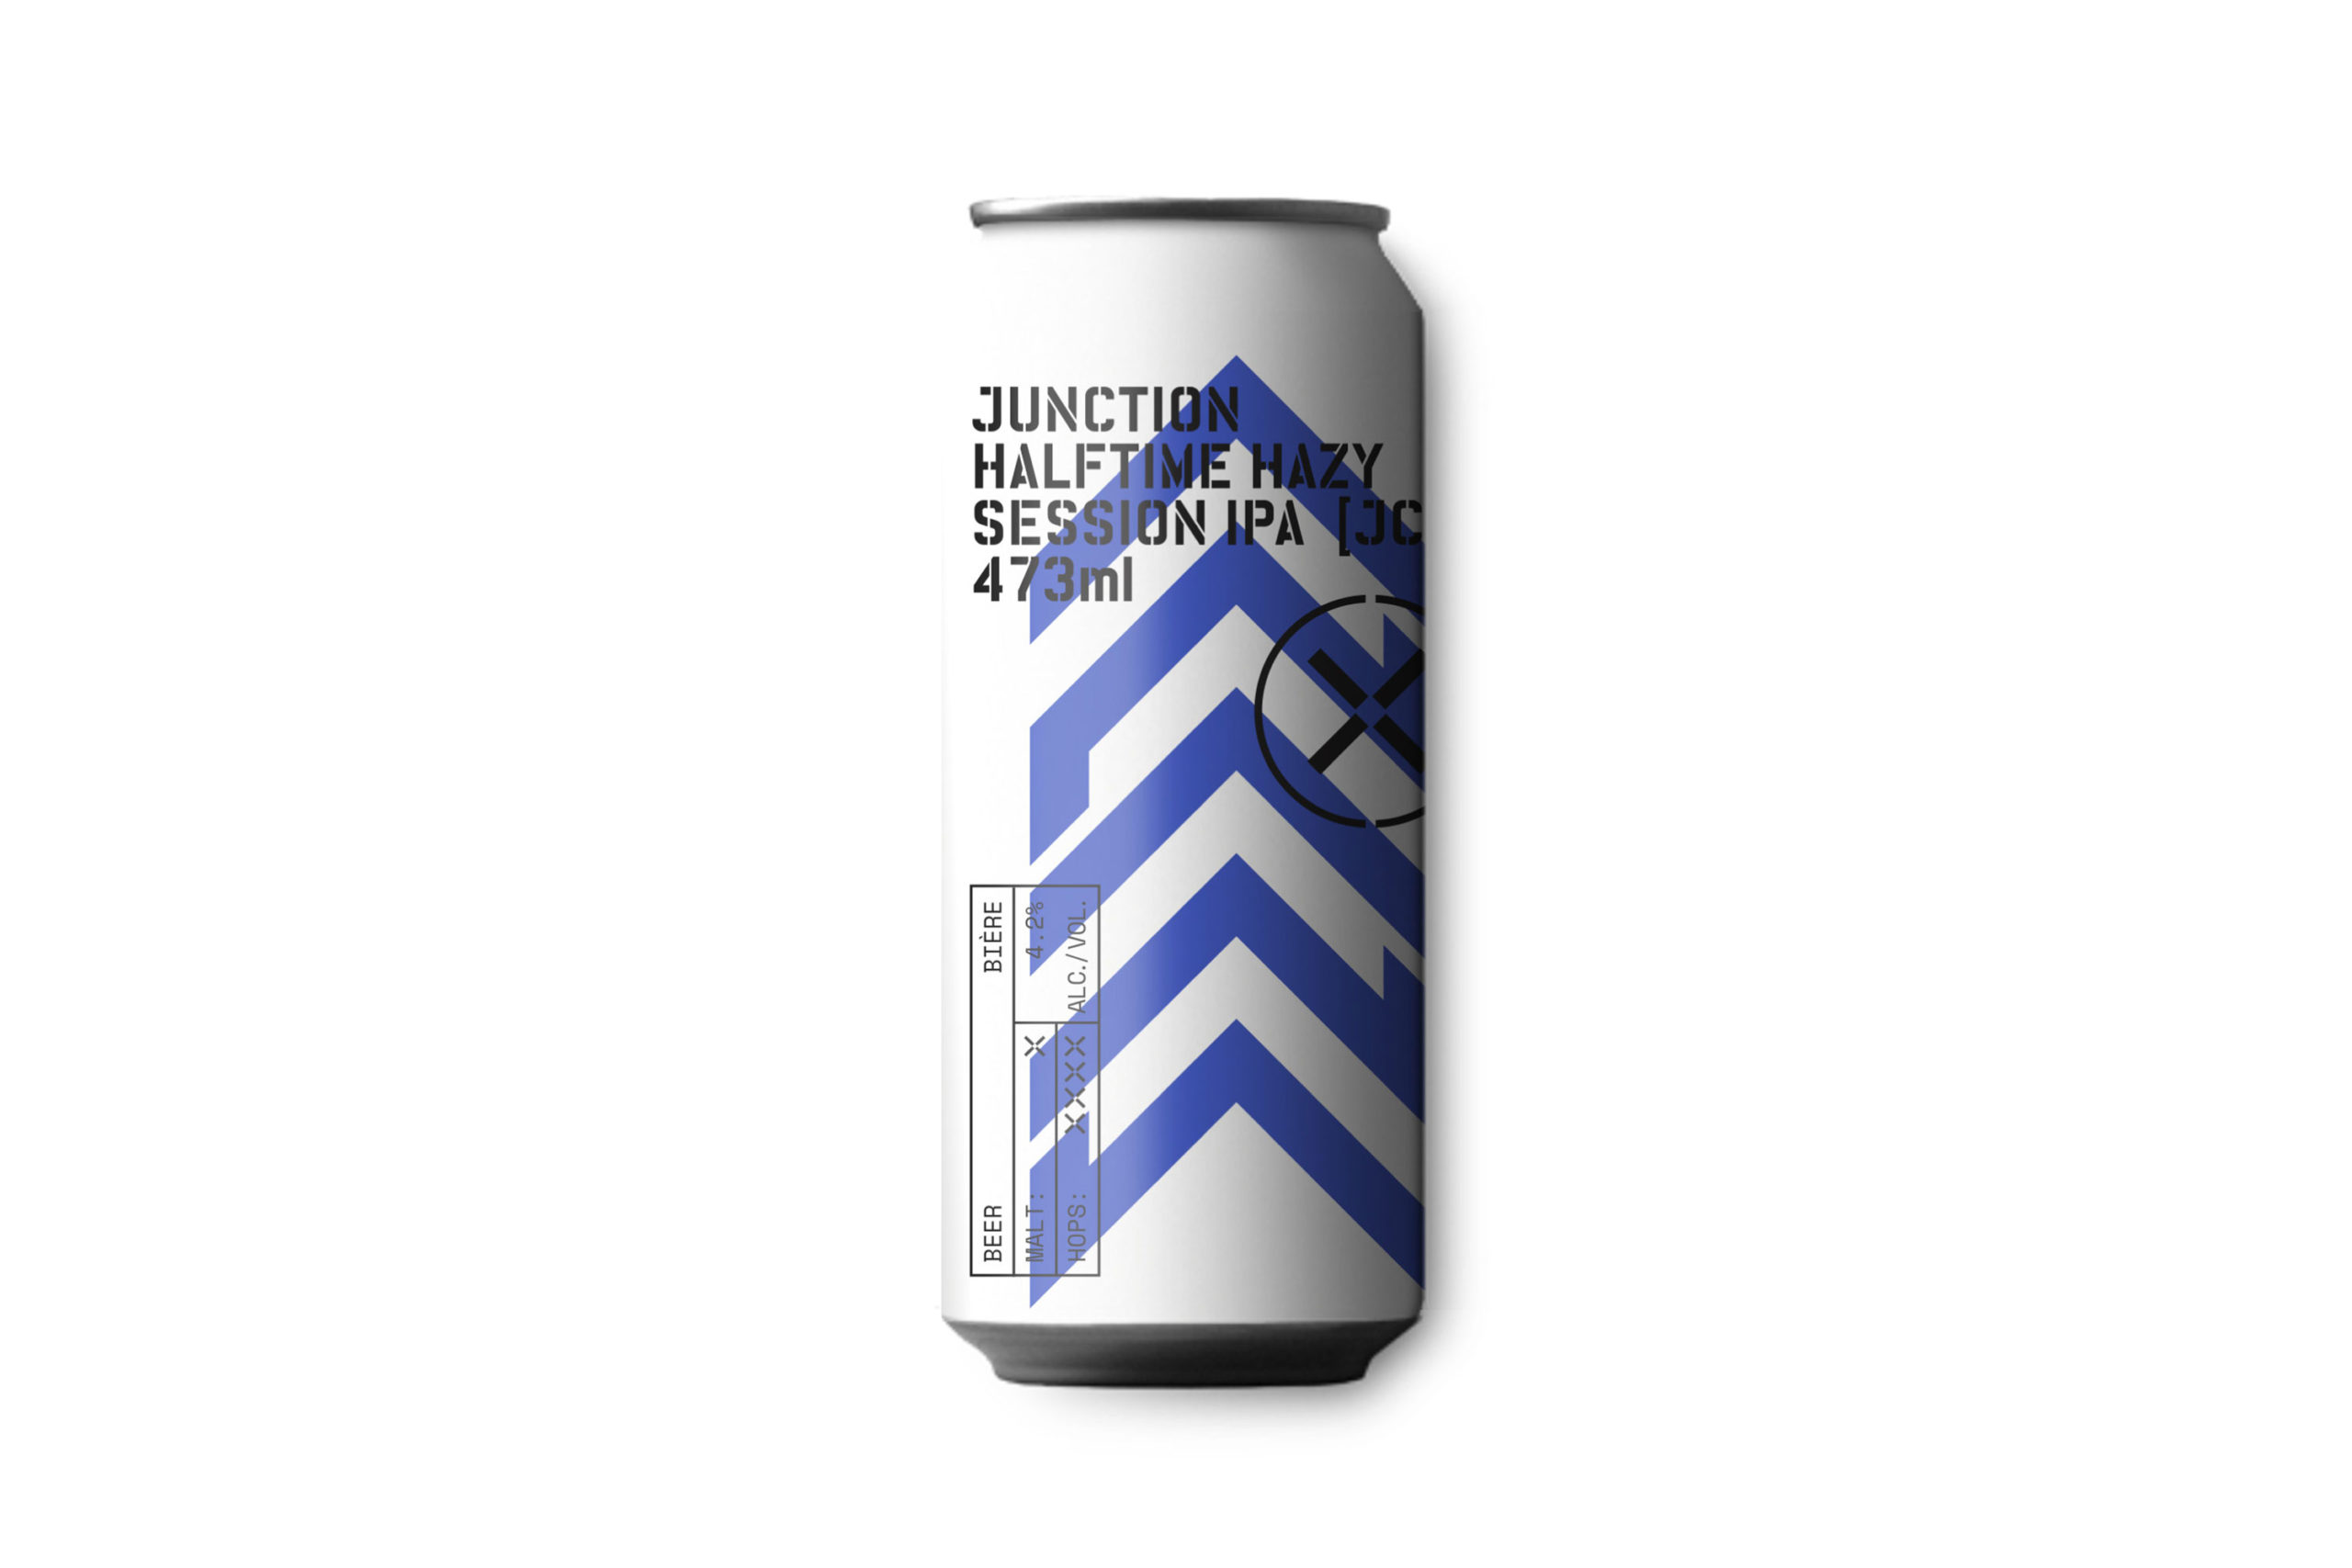 Introducing Halftime Hazy Session IPA, our Matchday Series Collab with Junction